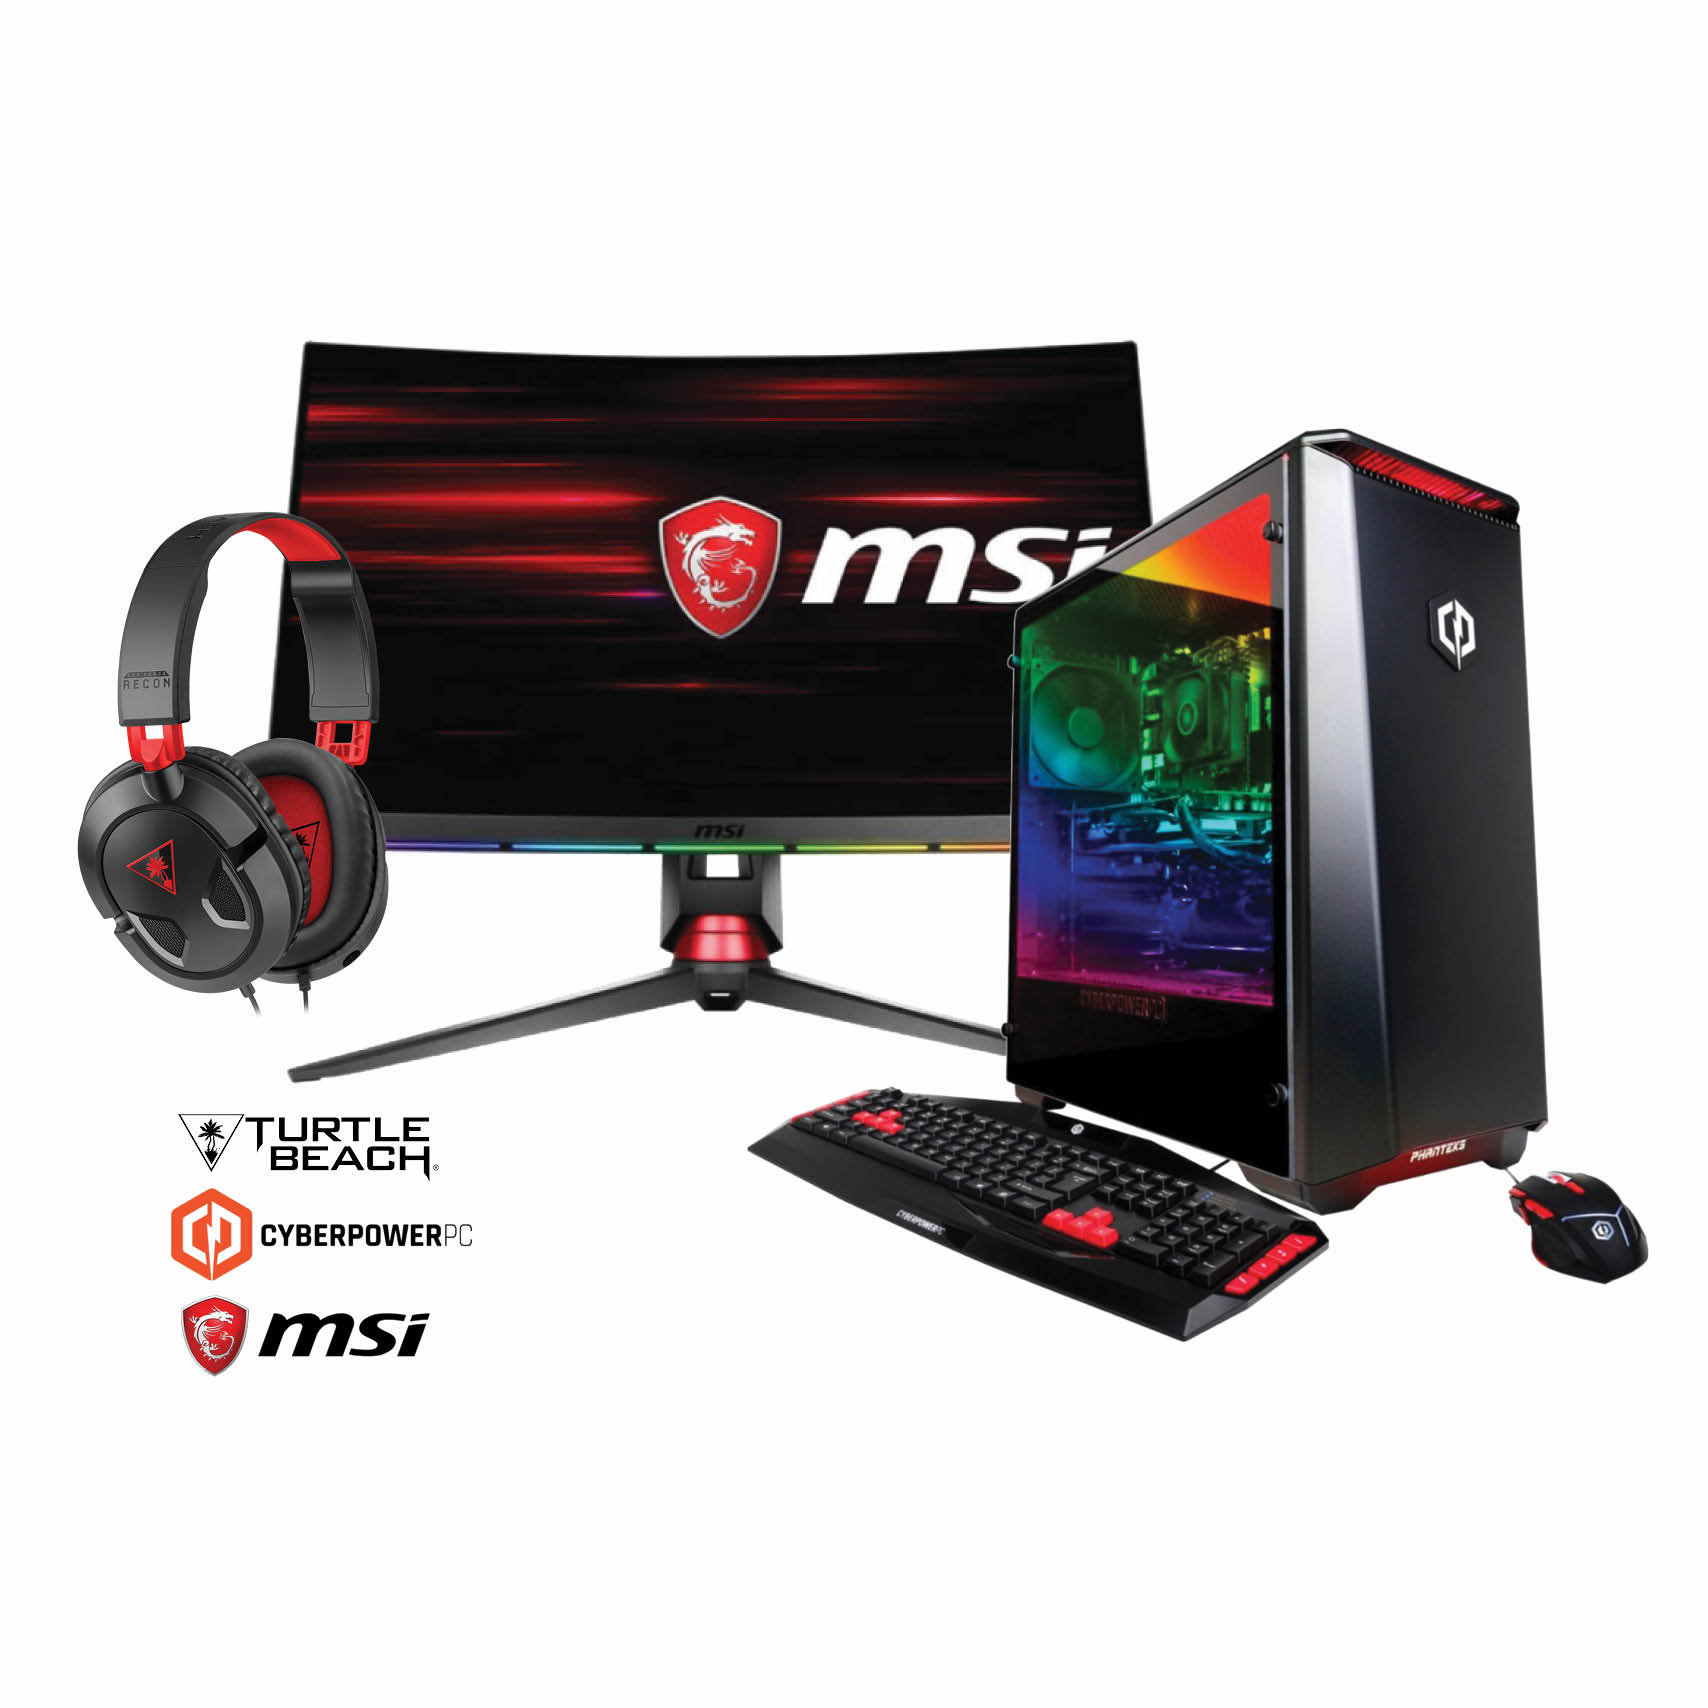 CyberPower Gaming Computer Bundle